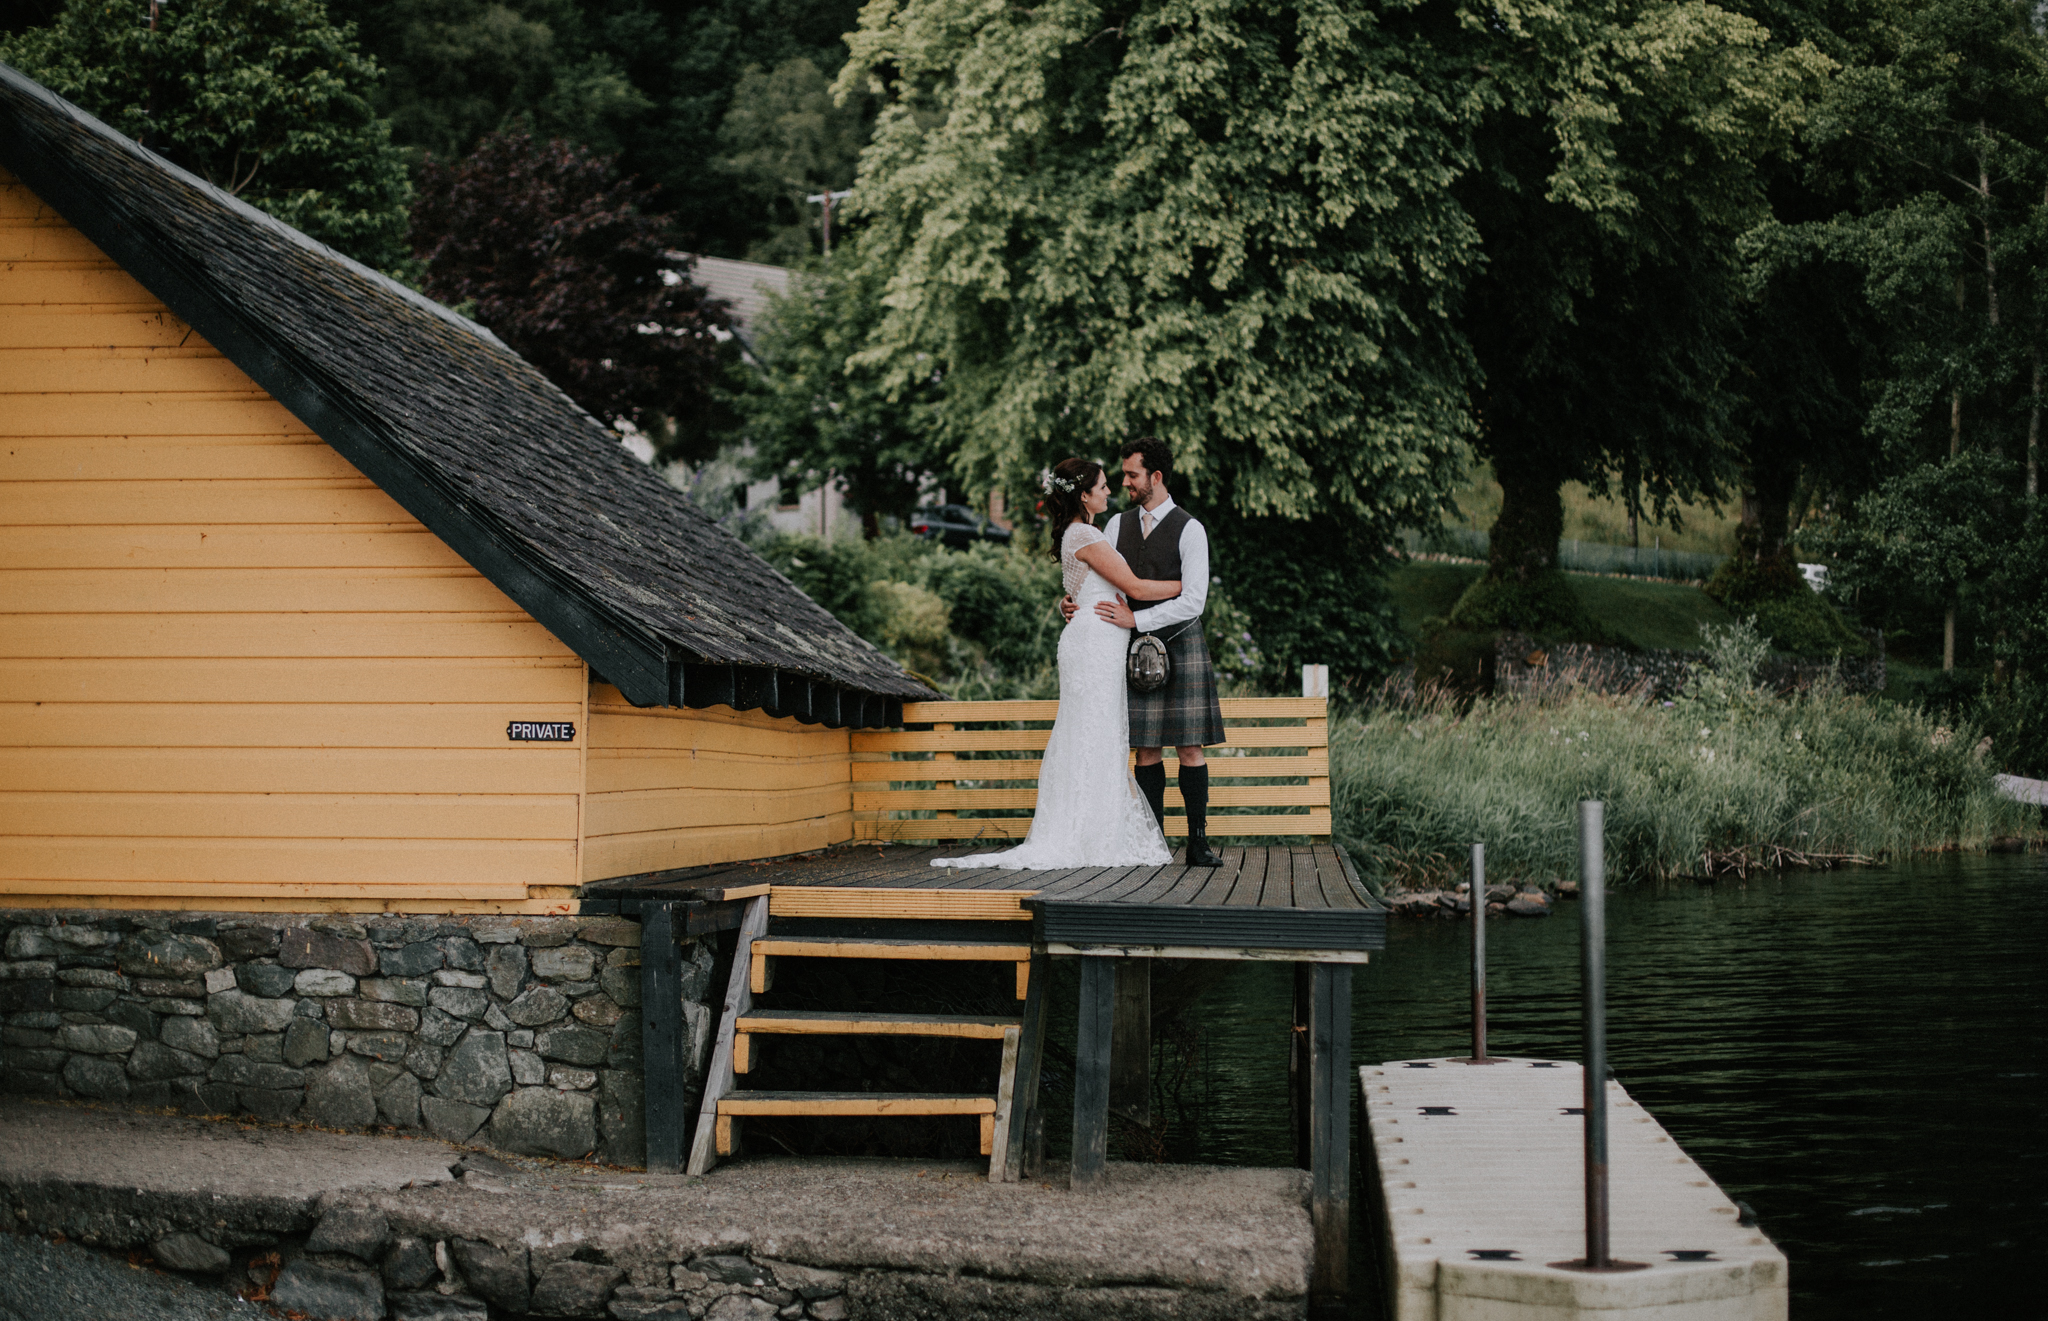 The classic shot at the yellow boat house at Altskeith Country House